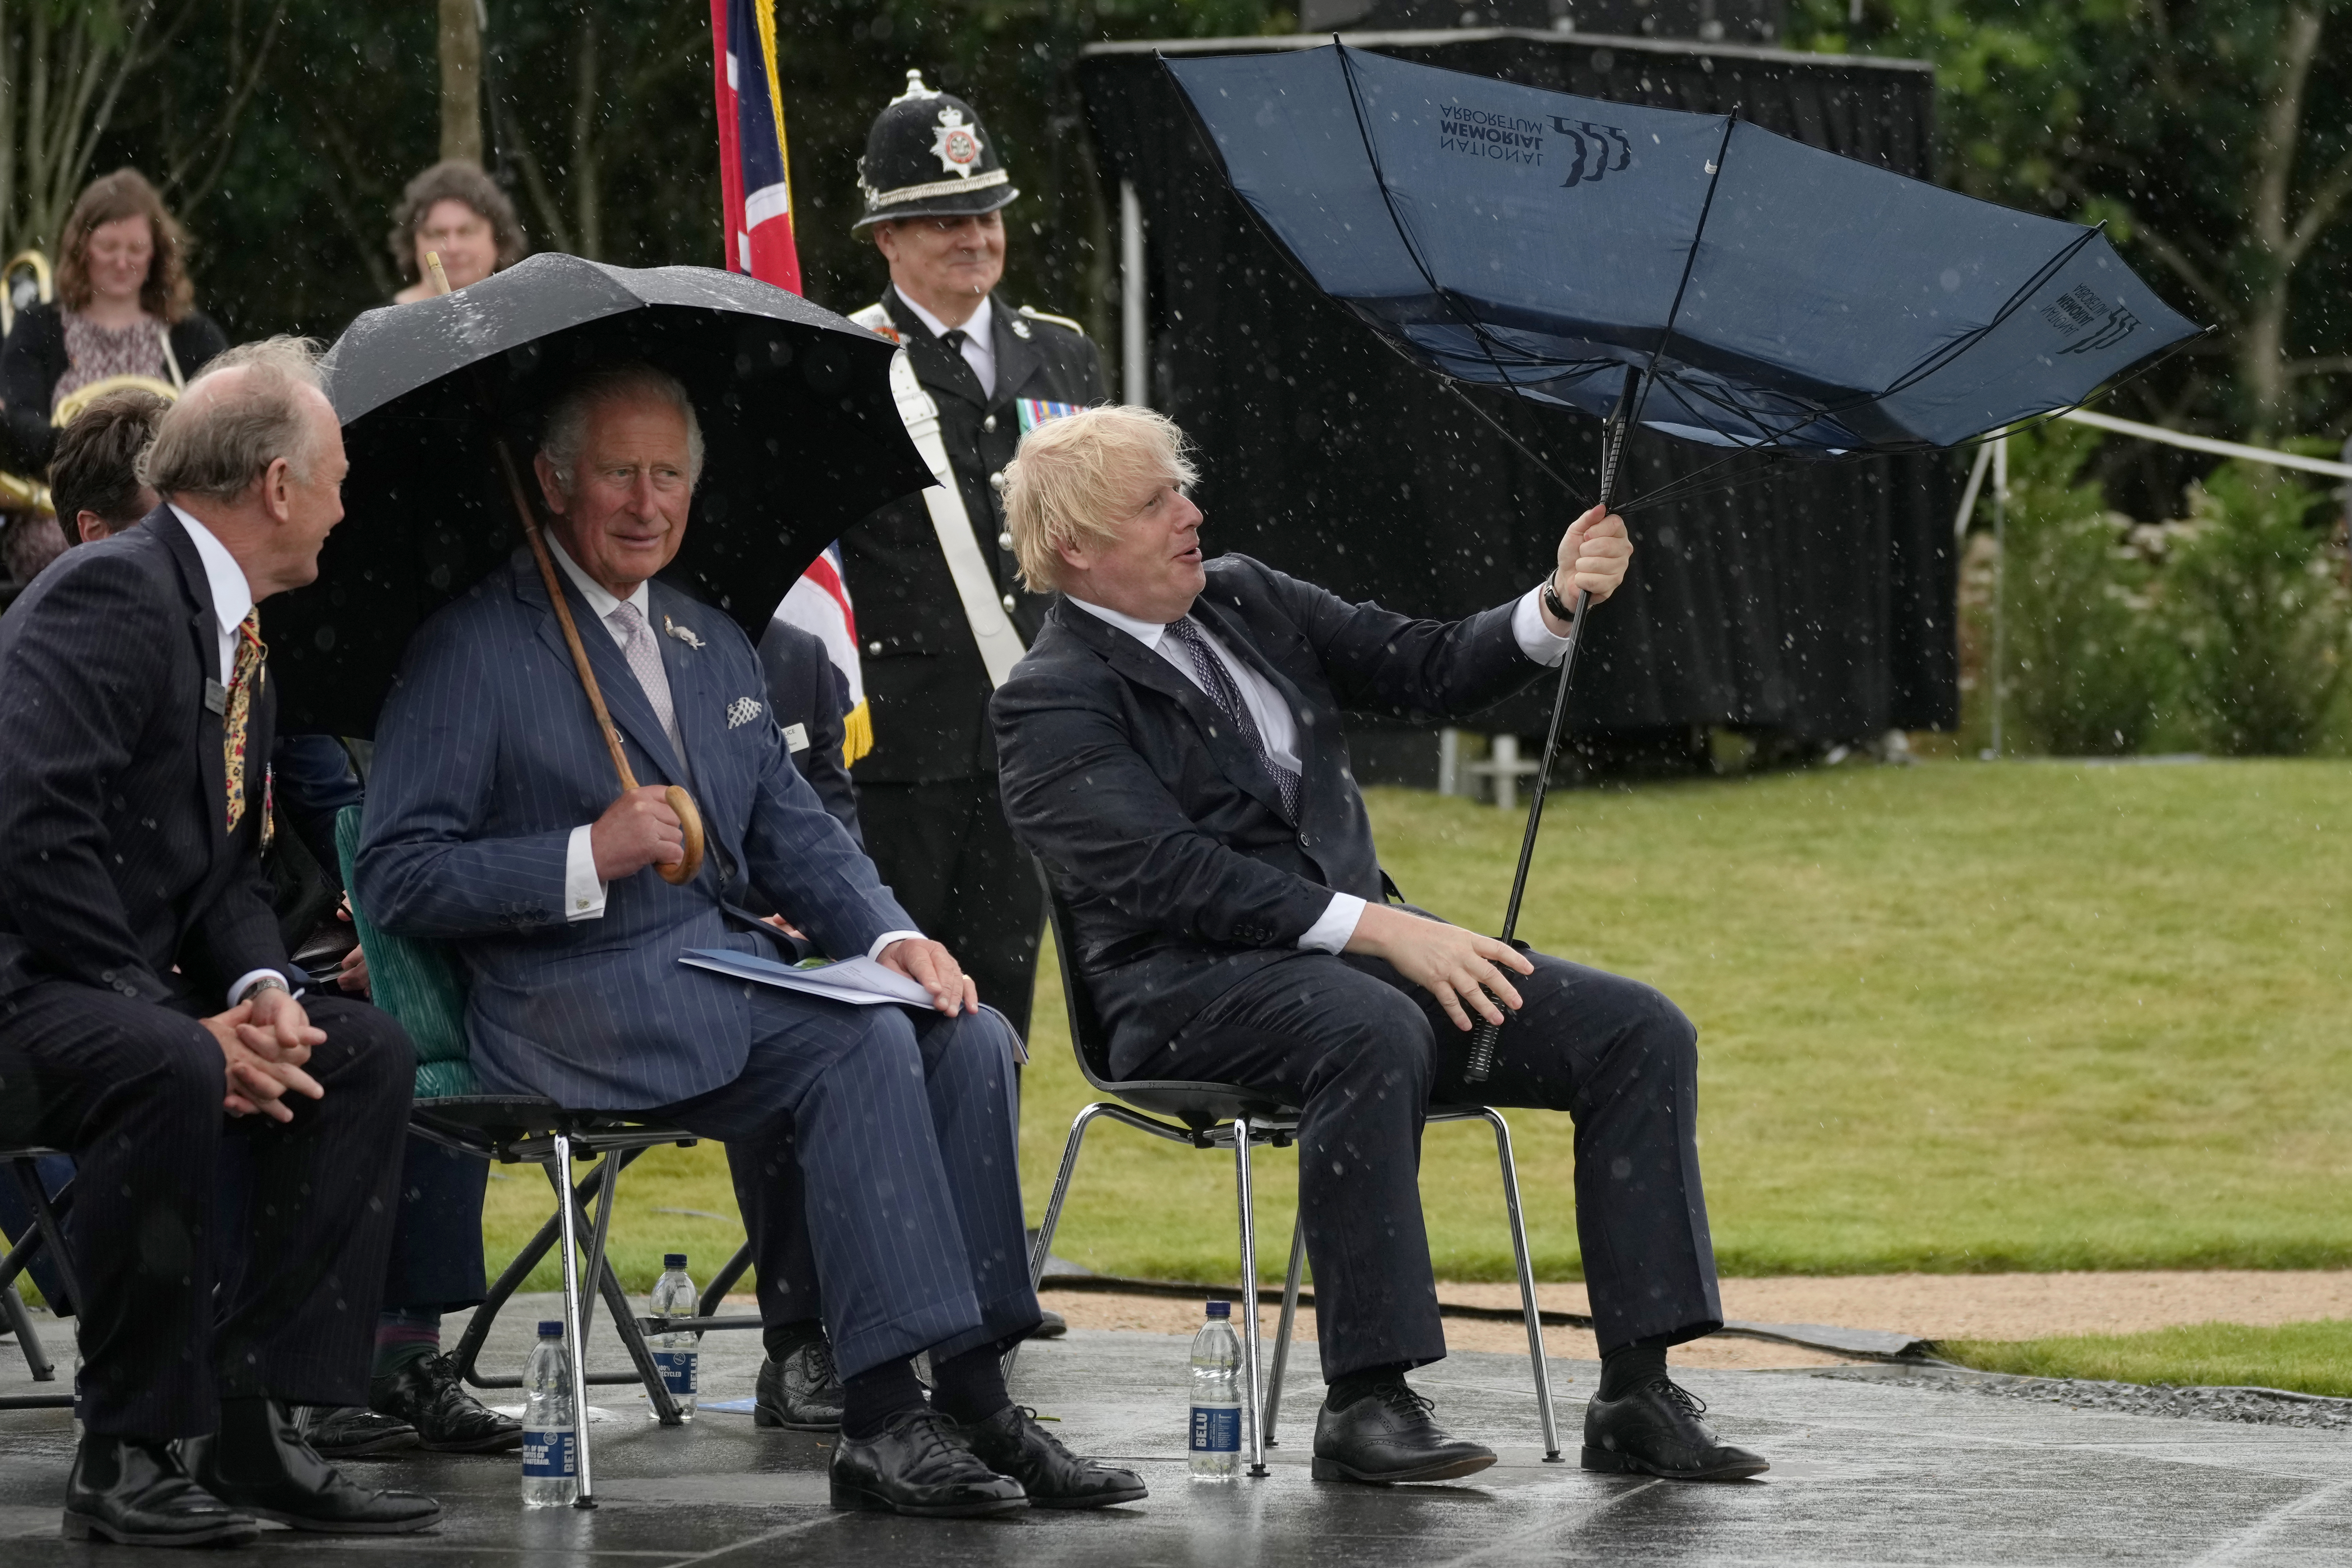 <p>The Prince of Wales (centre) looks on as Prime Minister Boris Johnson opens an umbrella at the unveiling of the UK Police Memorial at the National Memorial Arboretum at Alrewas, Staffordshire. The �4.5 million memorial commemorates all personnel who have lost their lives since the 1749 formation of the Bow Street Runners. Picture date: Wednesday July 28, 2021.</p>